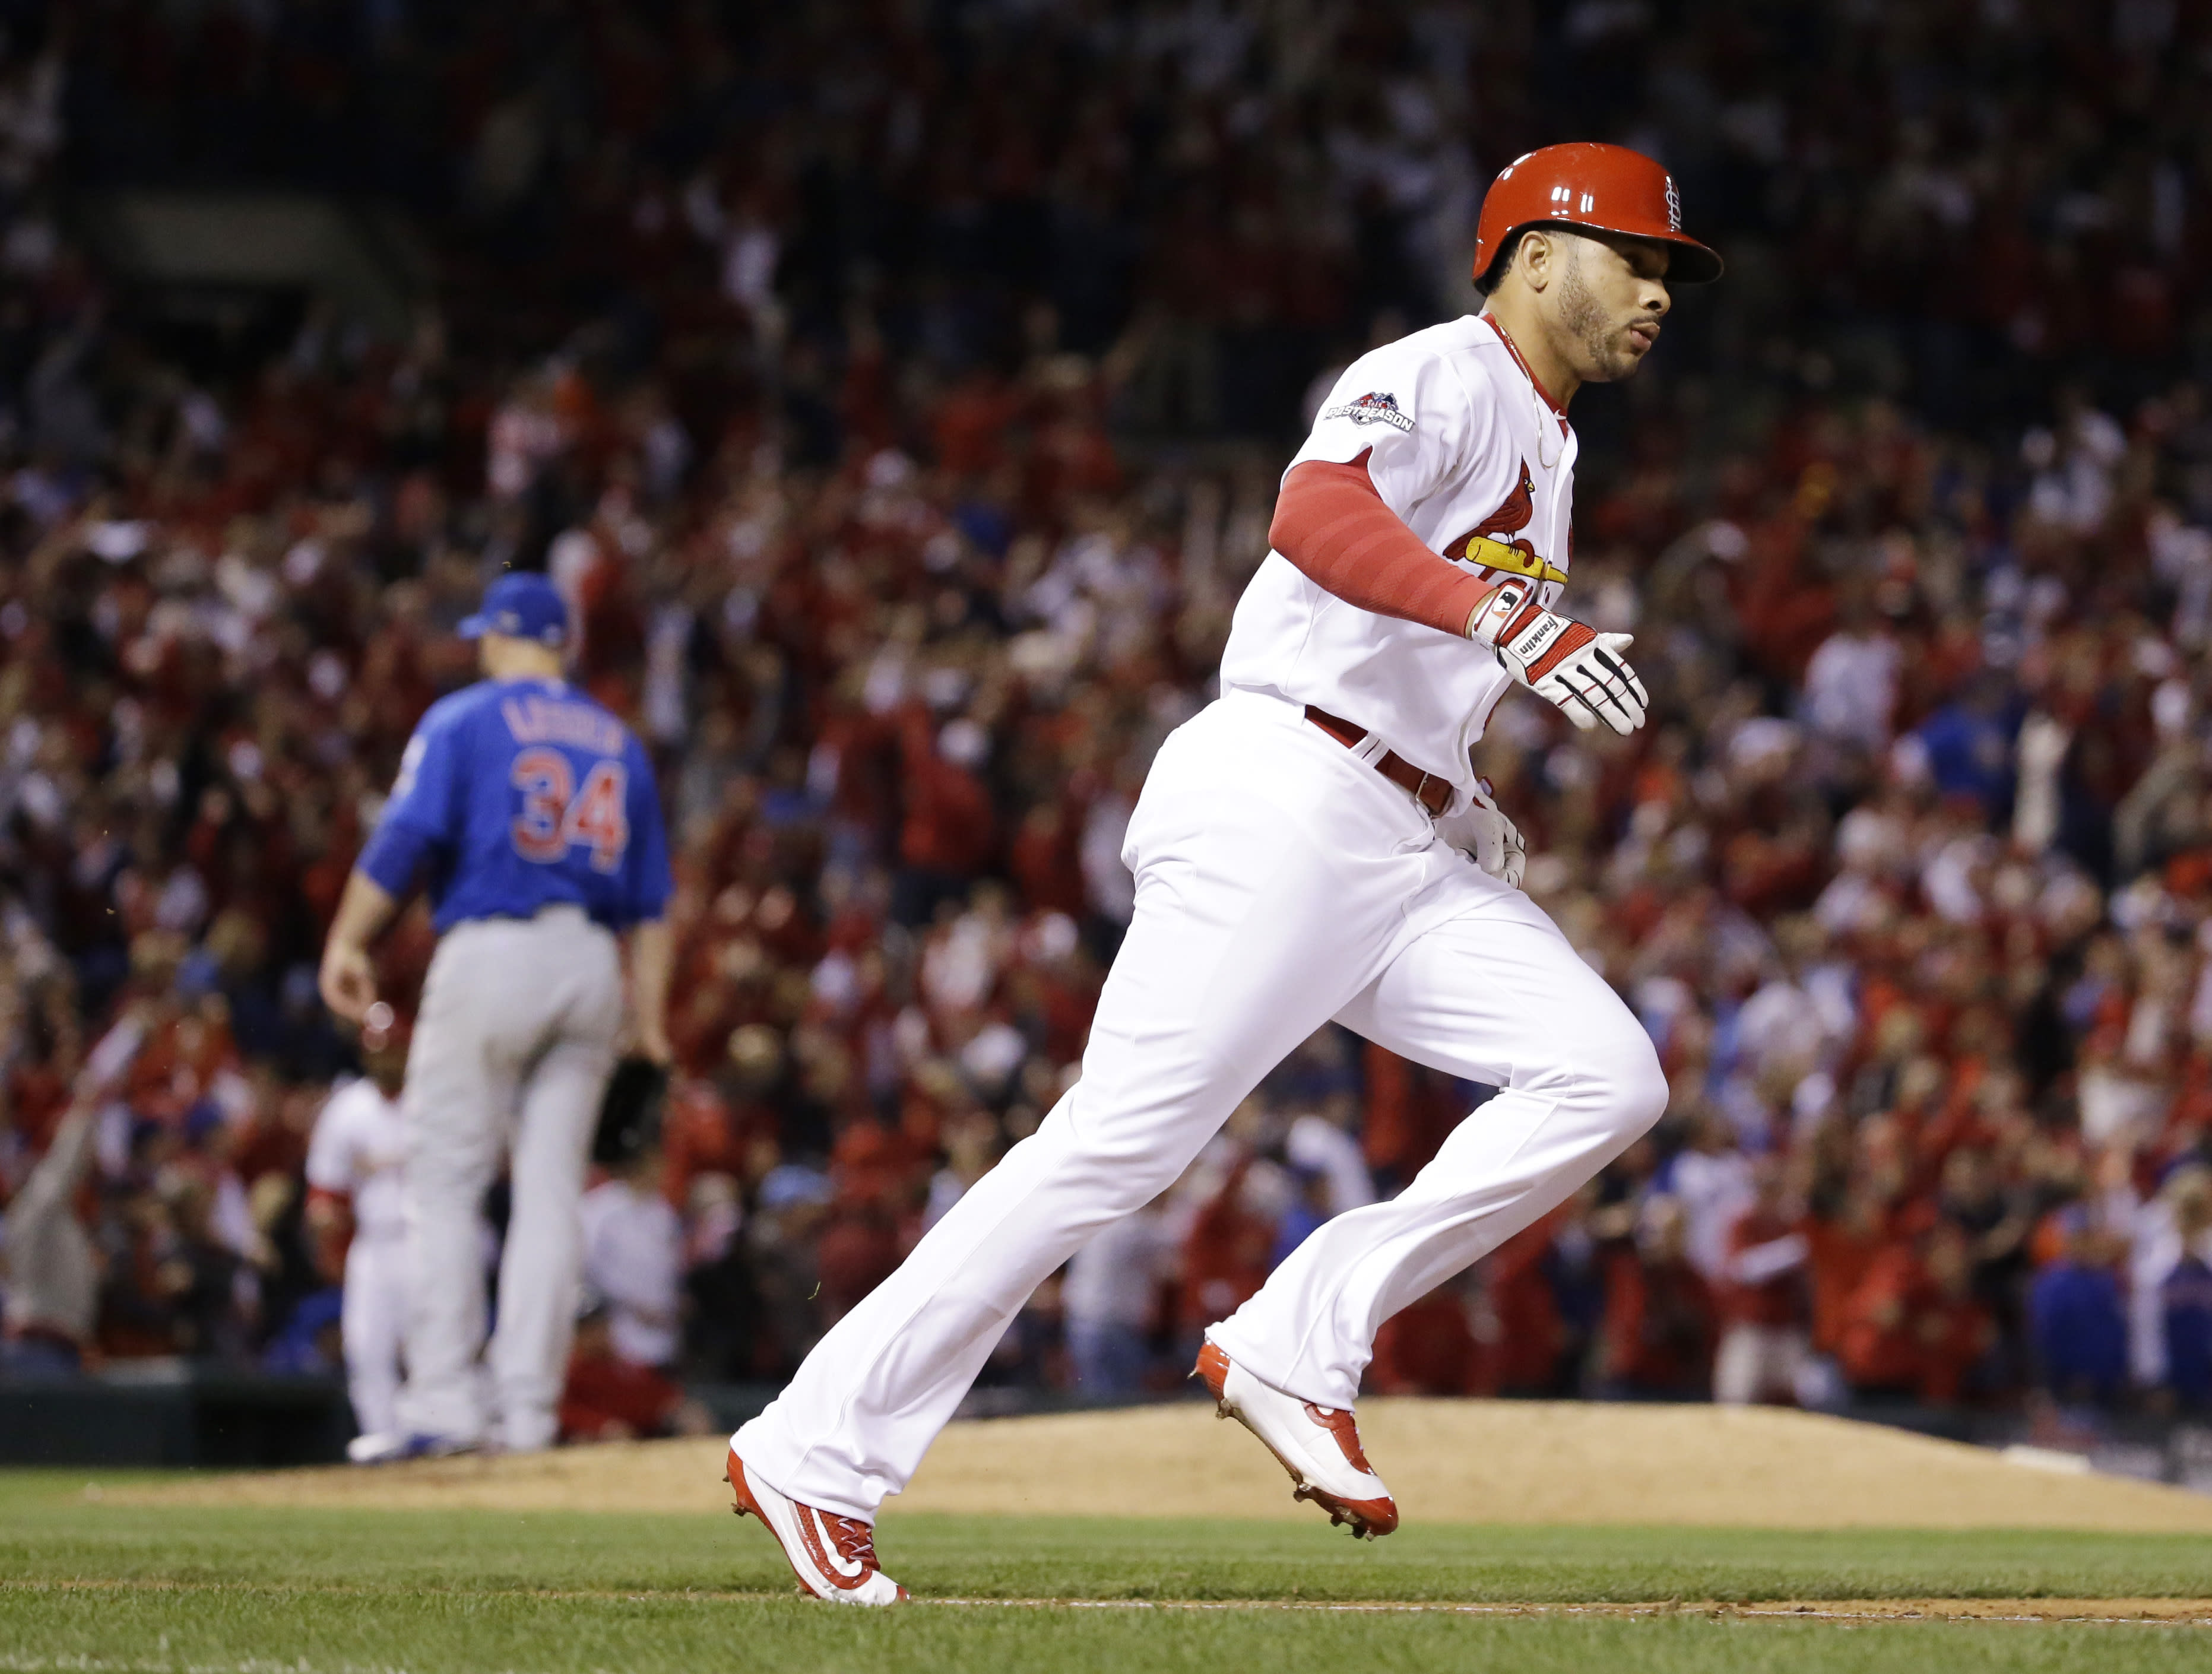 LEADING OFF: Garcia up for Cards, Syndergaard on the road